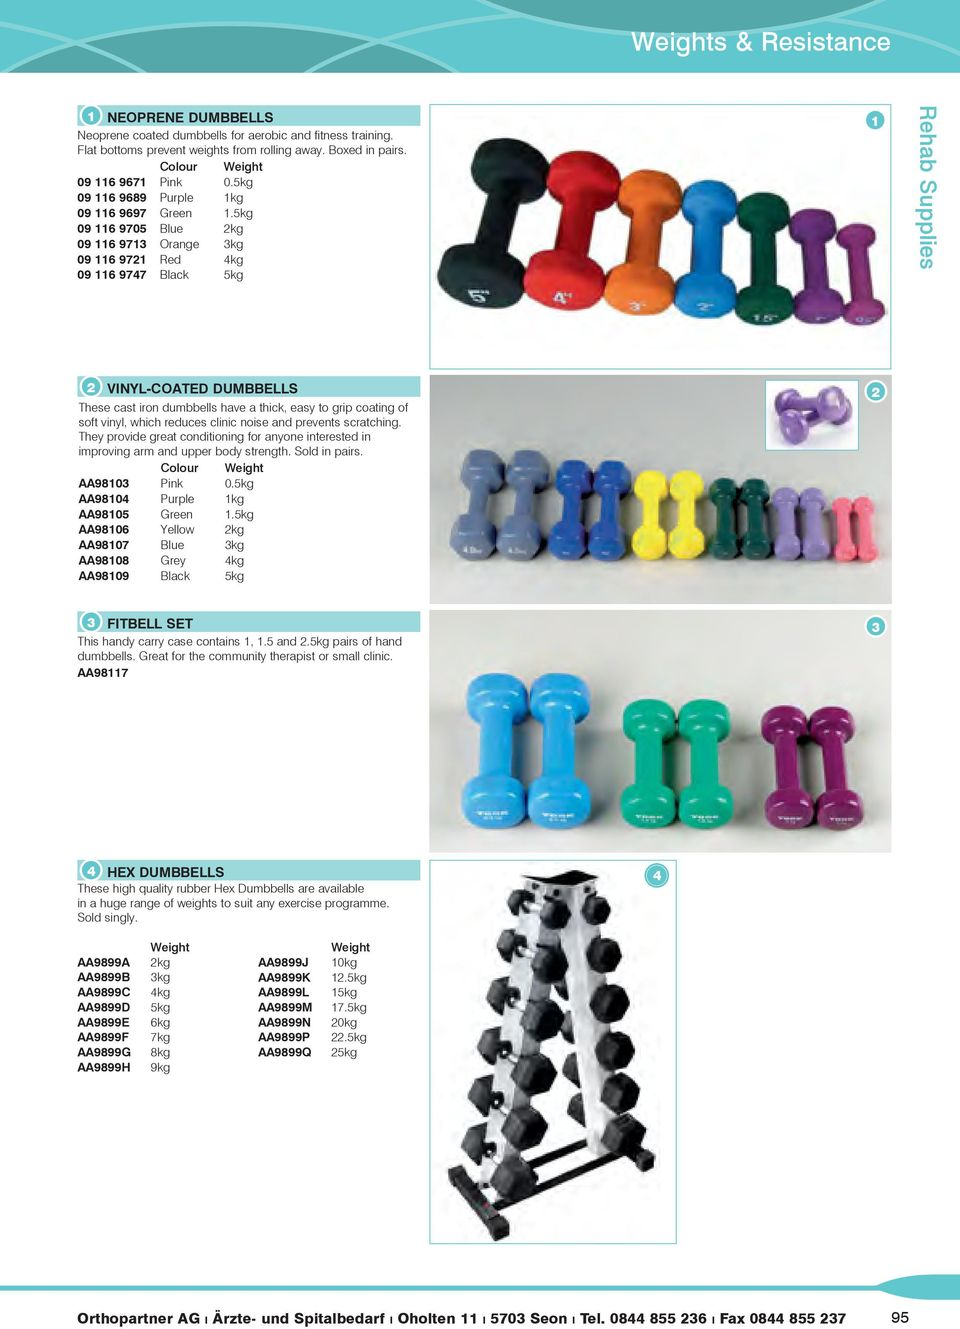 5kg 09 6 9705 Blue kg 09 6 97 Orange kg 09 6 97 Red kg 09 6 977 Black 5kg VINYL-COATED DUMBBELLS These cast iron dumbbells have a thick, easy to grip coating of soft vinyl, which reduces clinic noise